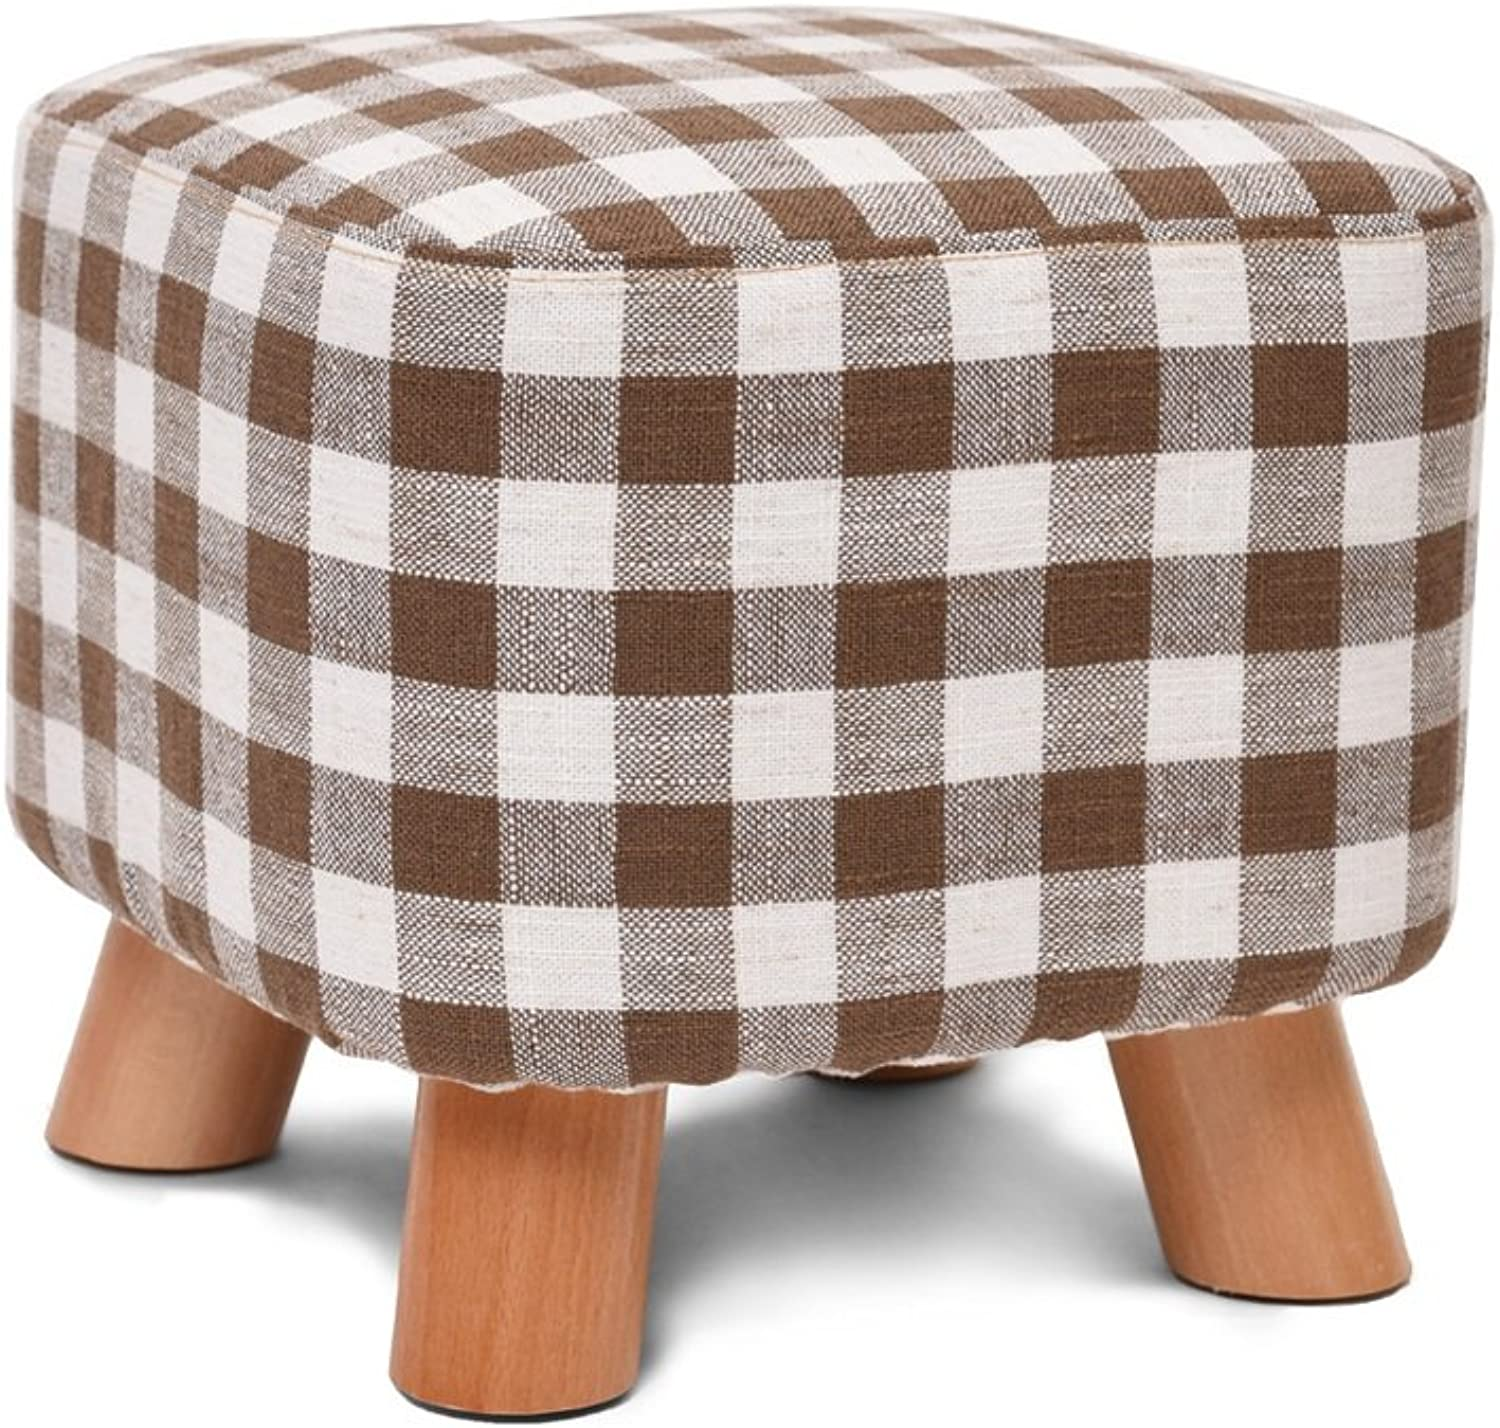 DQMSB Solid Wood shoes Bench Fashion shoes Stool Creative Square Stool Fabric Stool Stool Sofa Stool Coffee Table Bench Home Stool (color   B)